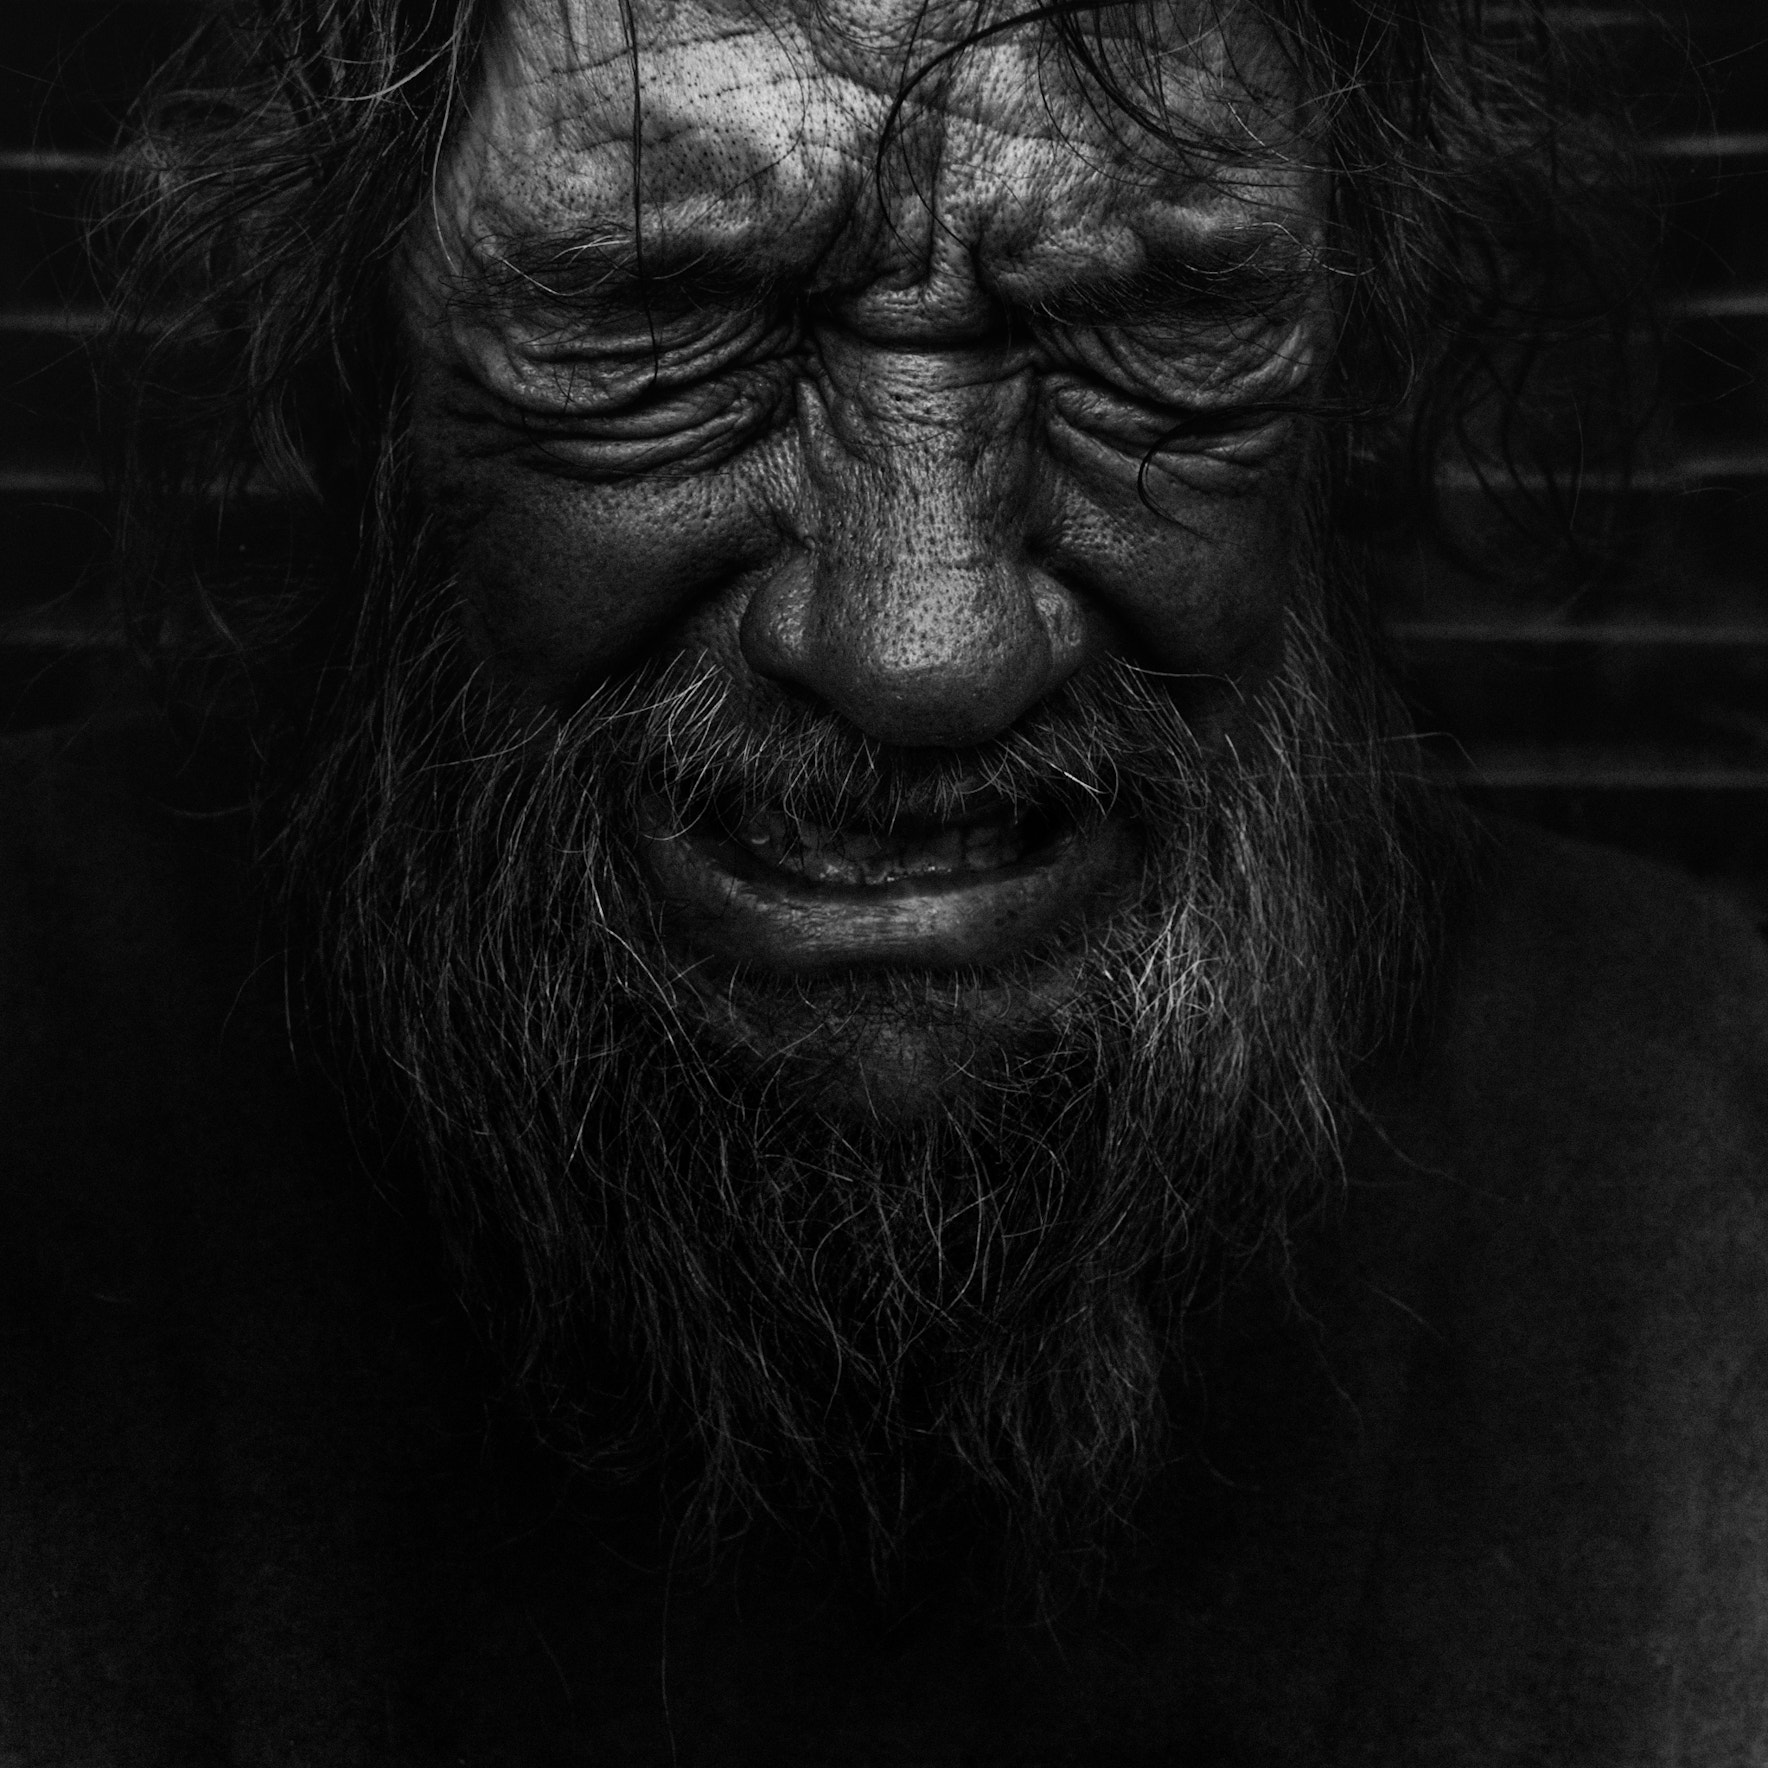 Photograph John by Lee Jeffries on 500px